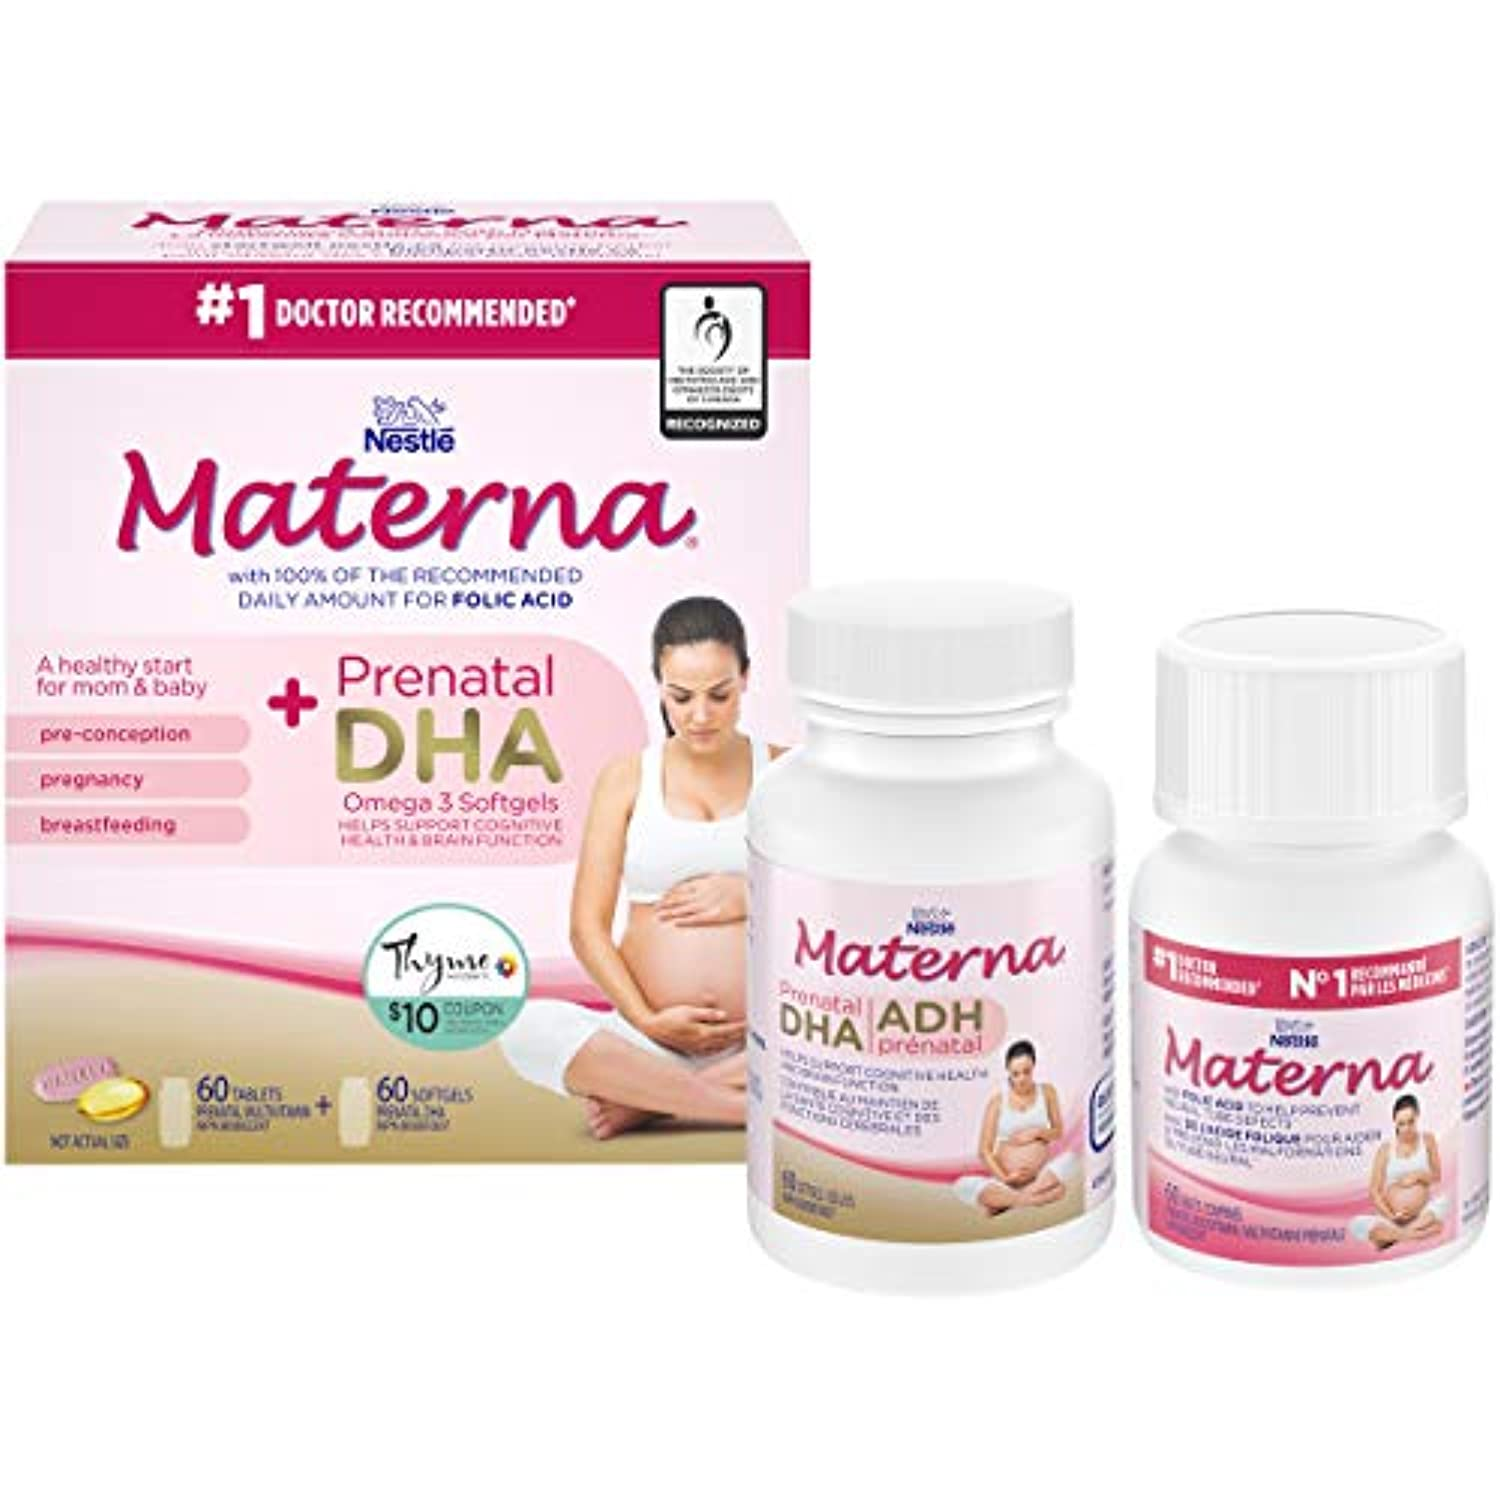 Materna Materna + Dha Prenatal Supplement, Combo-Pack (60 Tablets + 60 Soft gels), 120 Count